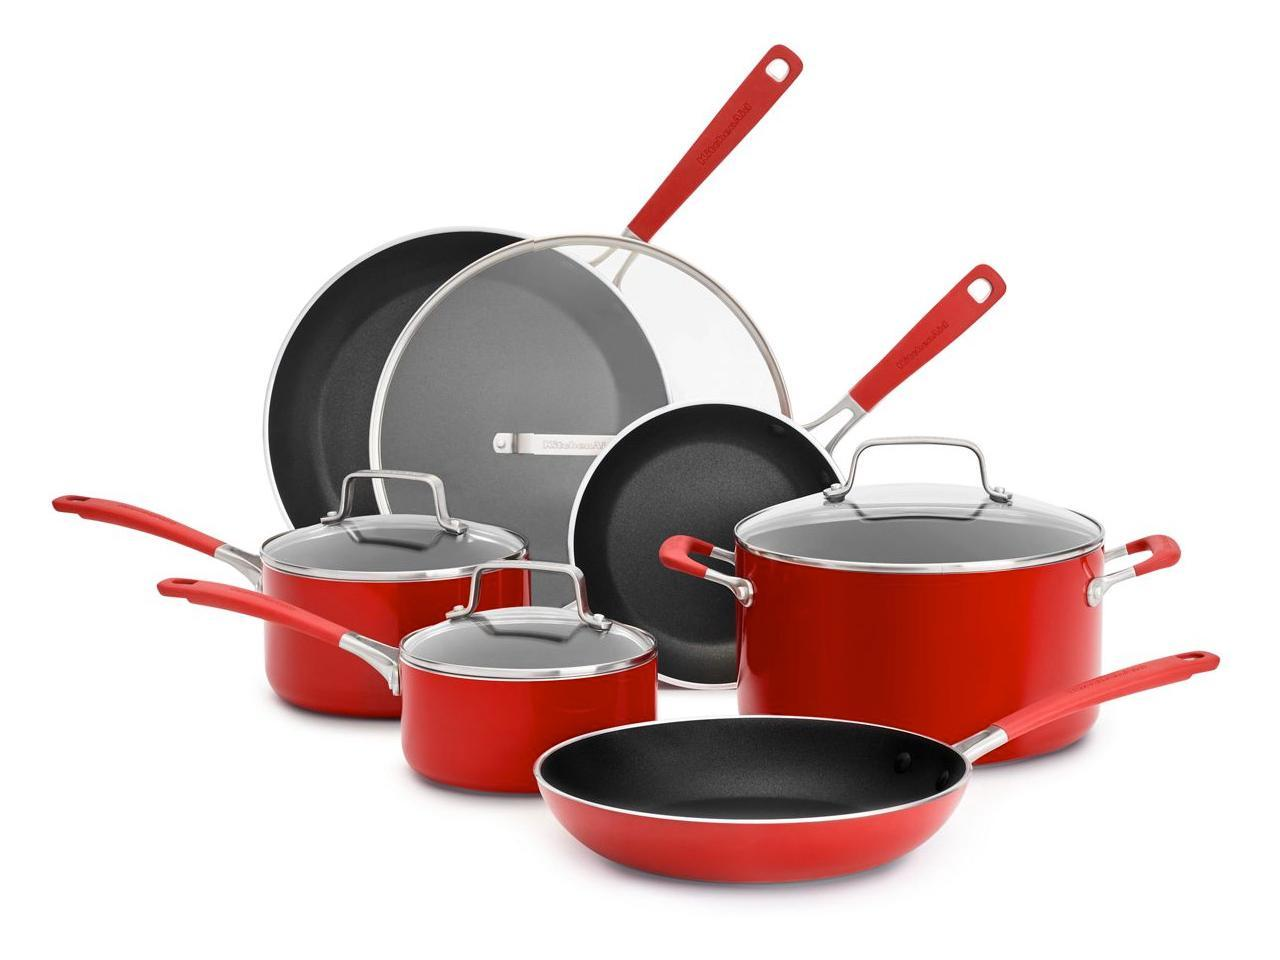 KitchenAid Aluminum Nonstick 10-Piece Cookware Set Red KC2AS10QER